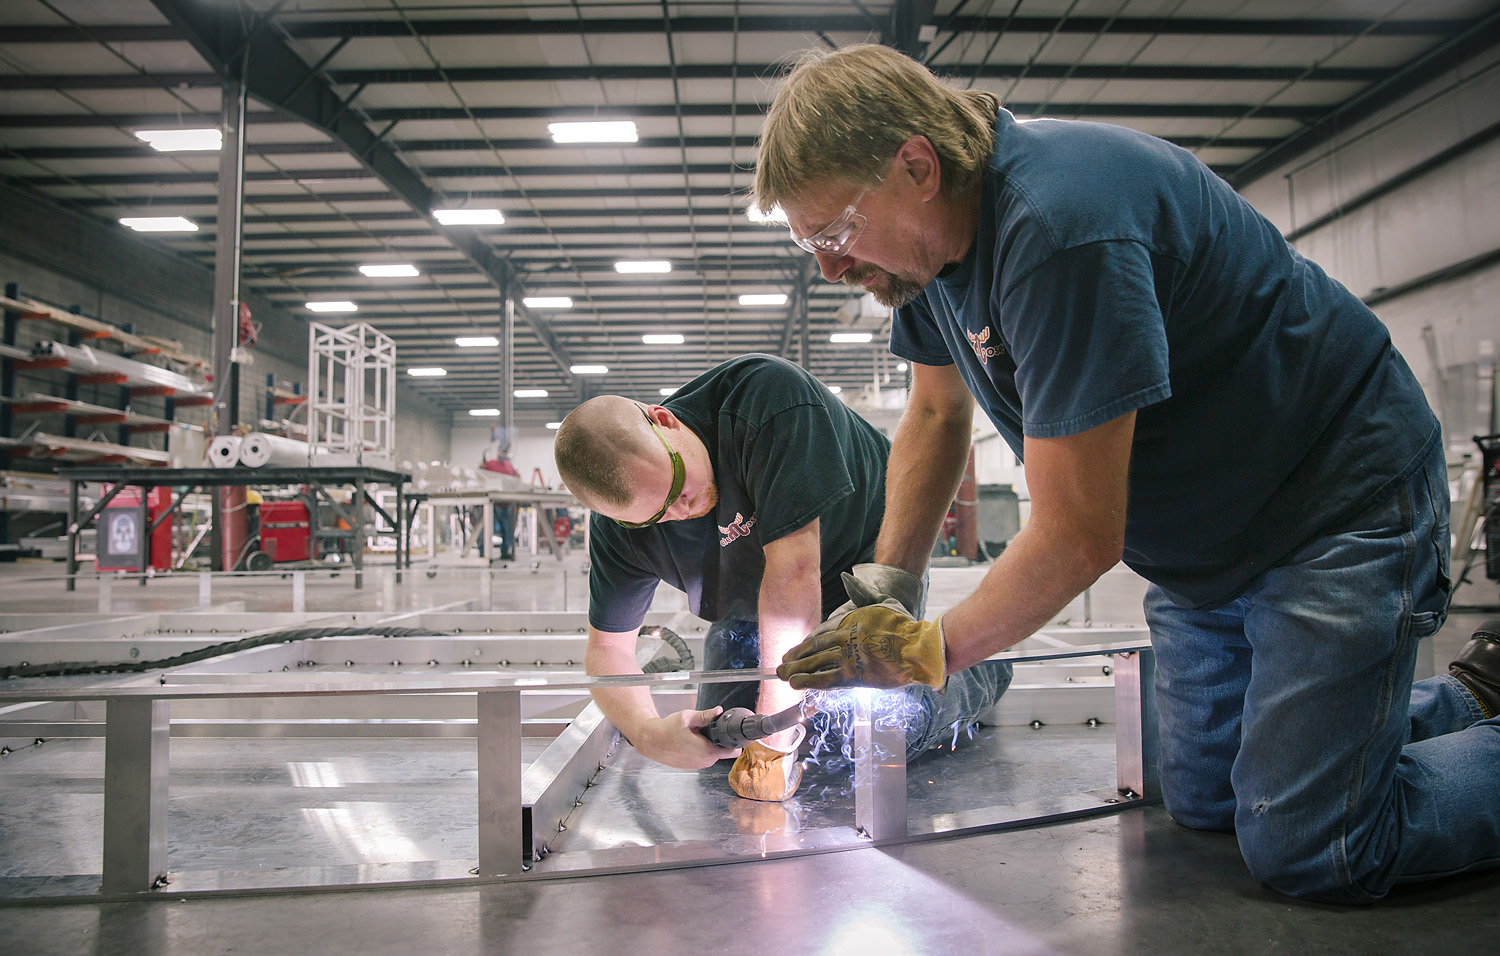 Nick Nimmo, left, and Patrick Brewer weld the frame of a metal sign at Elemoose's facility in Springfield, Mo.